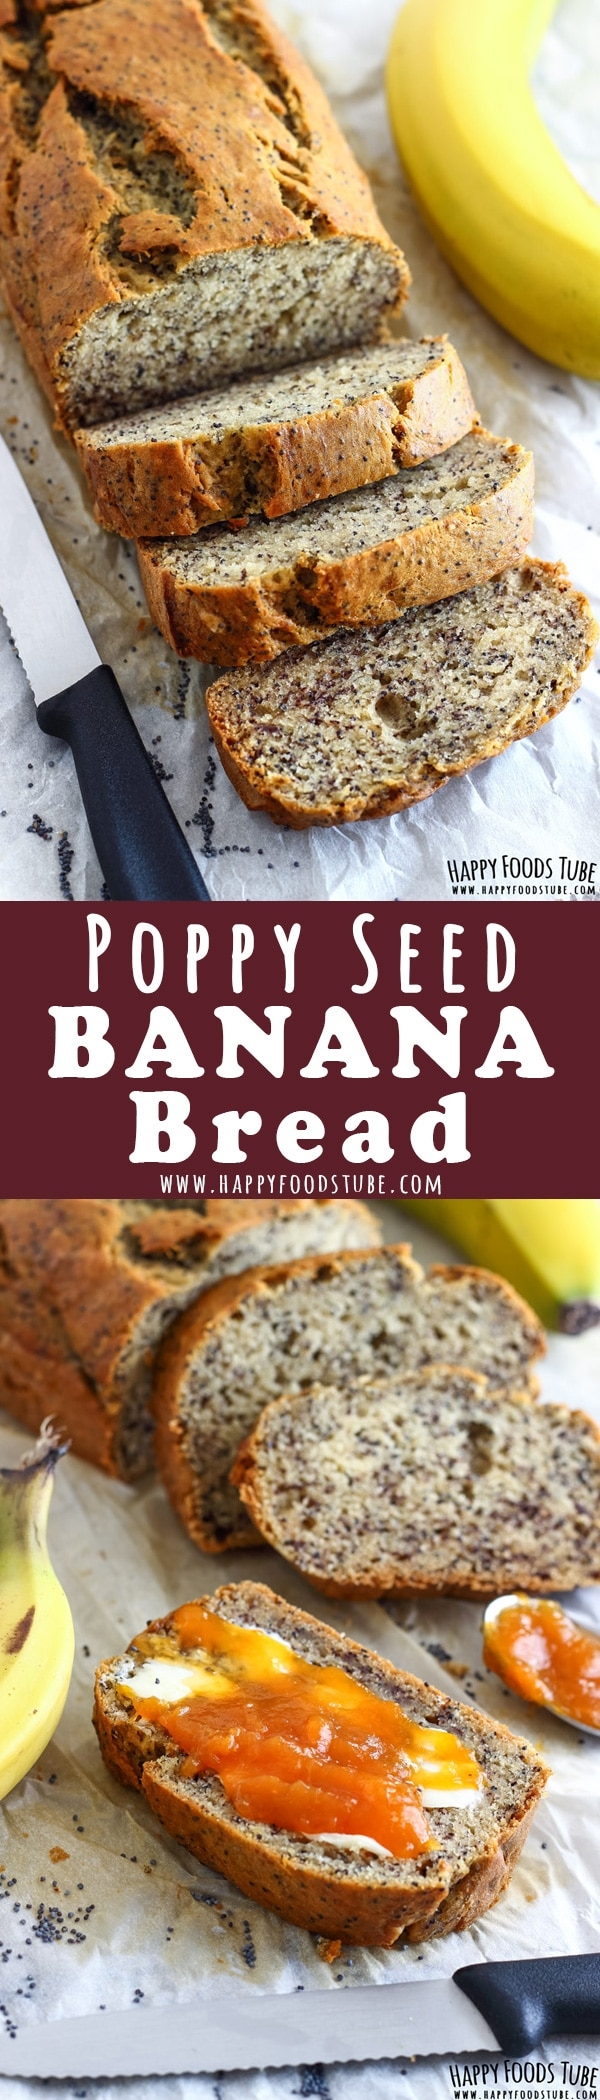 Enjoy this moist and crunchy poppy seed banana bread for breakfast, brunch or an afternoon snack. This recipe has no butter, no oil in it and is low in sugar. How to make banana bread with poppy seeds